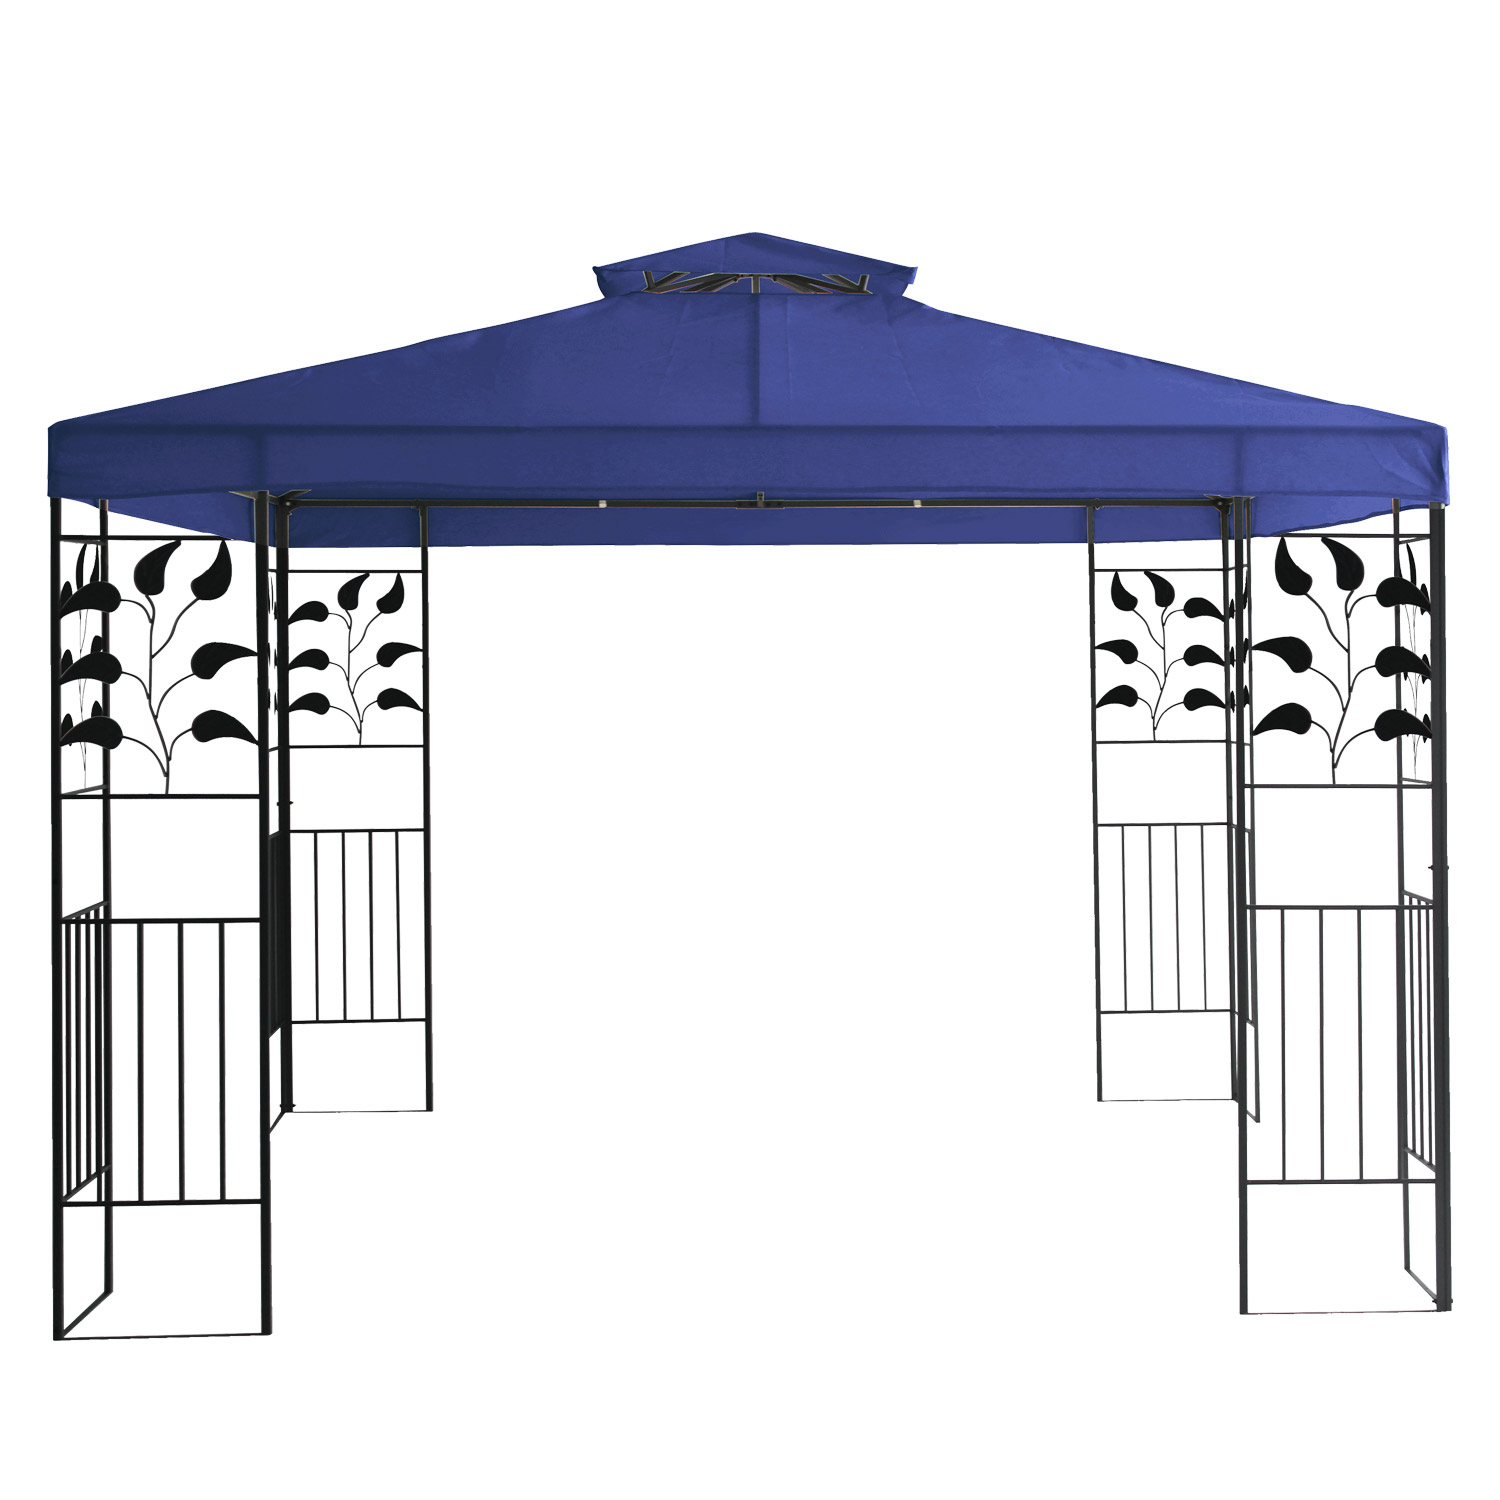 metall gartenpavillon 3x3 gazebo mit entl ftungsfunktion garten pavillon blau. Black Bedroom Furniture Sets. Home Design Ideas